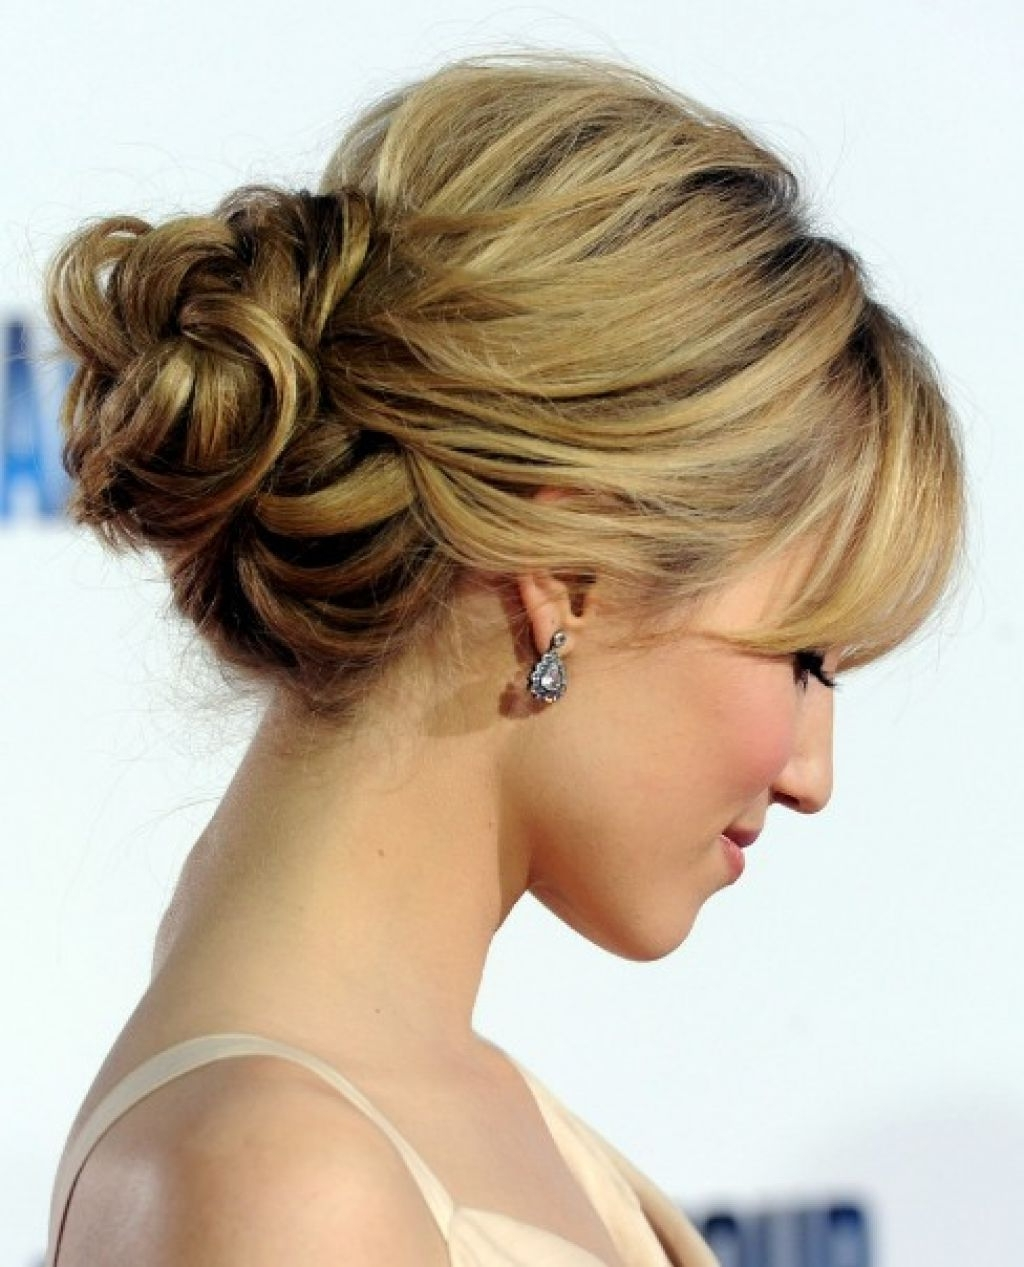 Romantic Loose Low Bun Updo For Wedding From Dianna Agron | Wedding Inside Low Messy Updo Hairstyles (View 13 of 15)